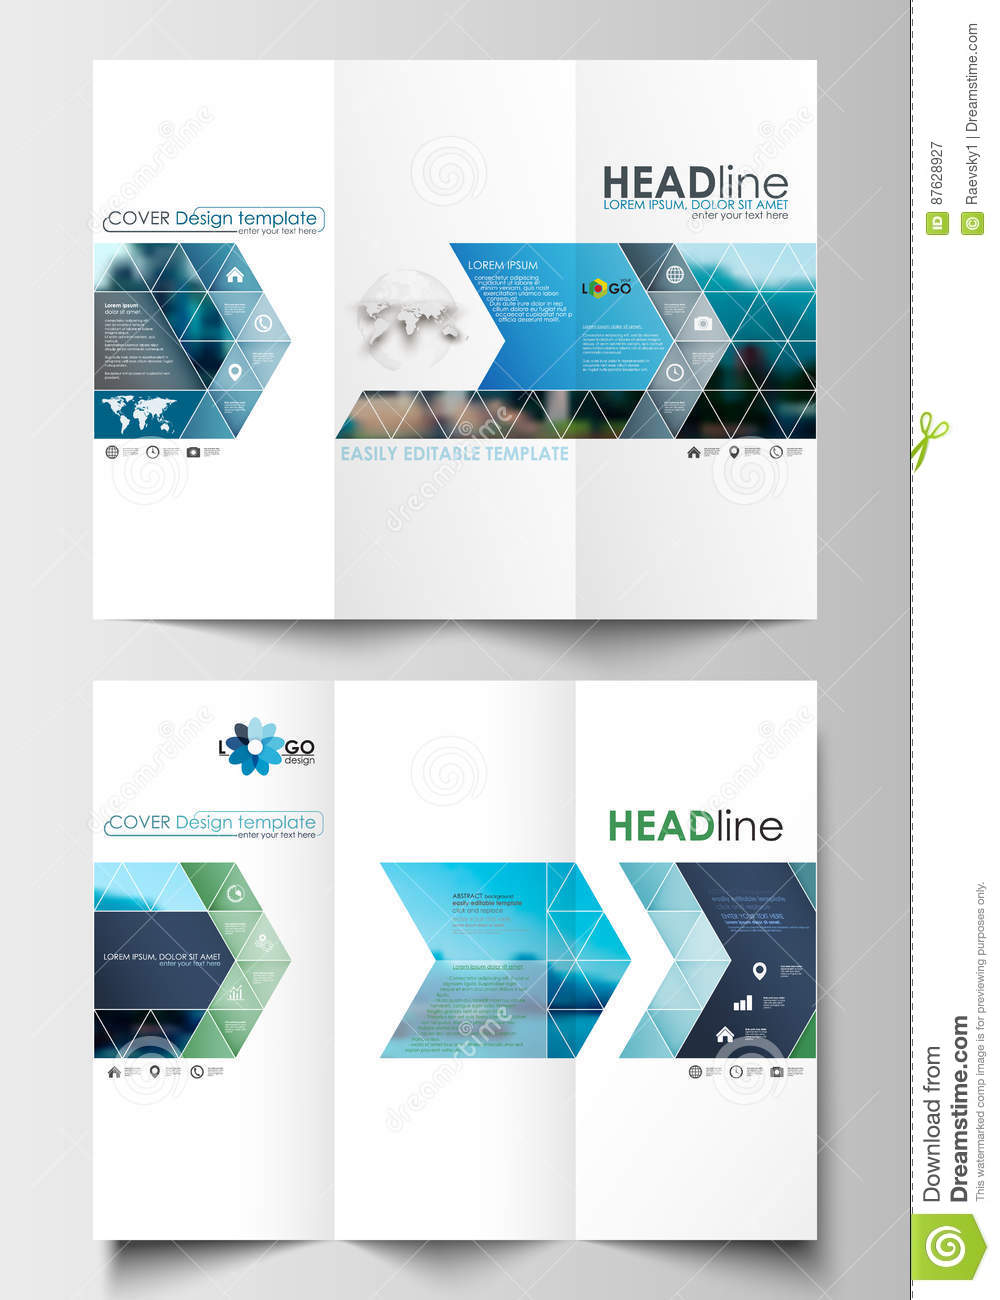 tri fold brochure business templates on both sides flat design blue